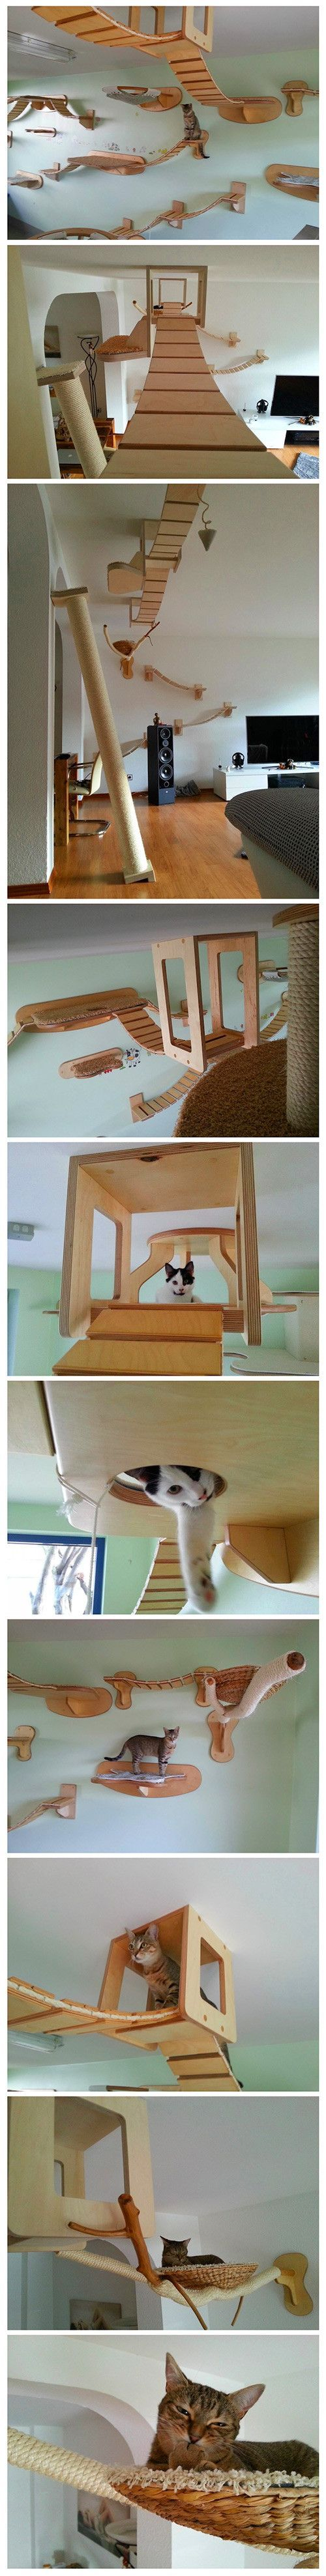 DIY Kitty TARDIS Playhouse For Cats Who Love The Doctor